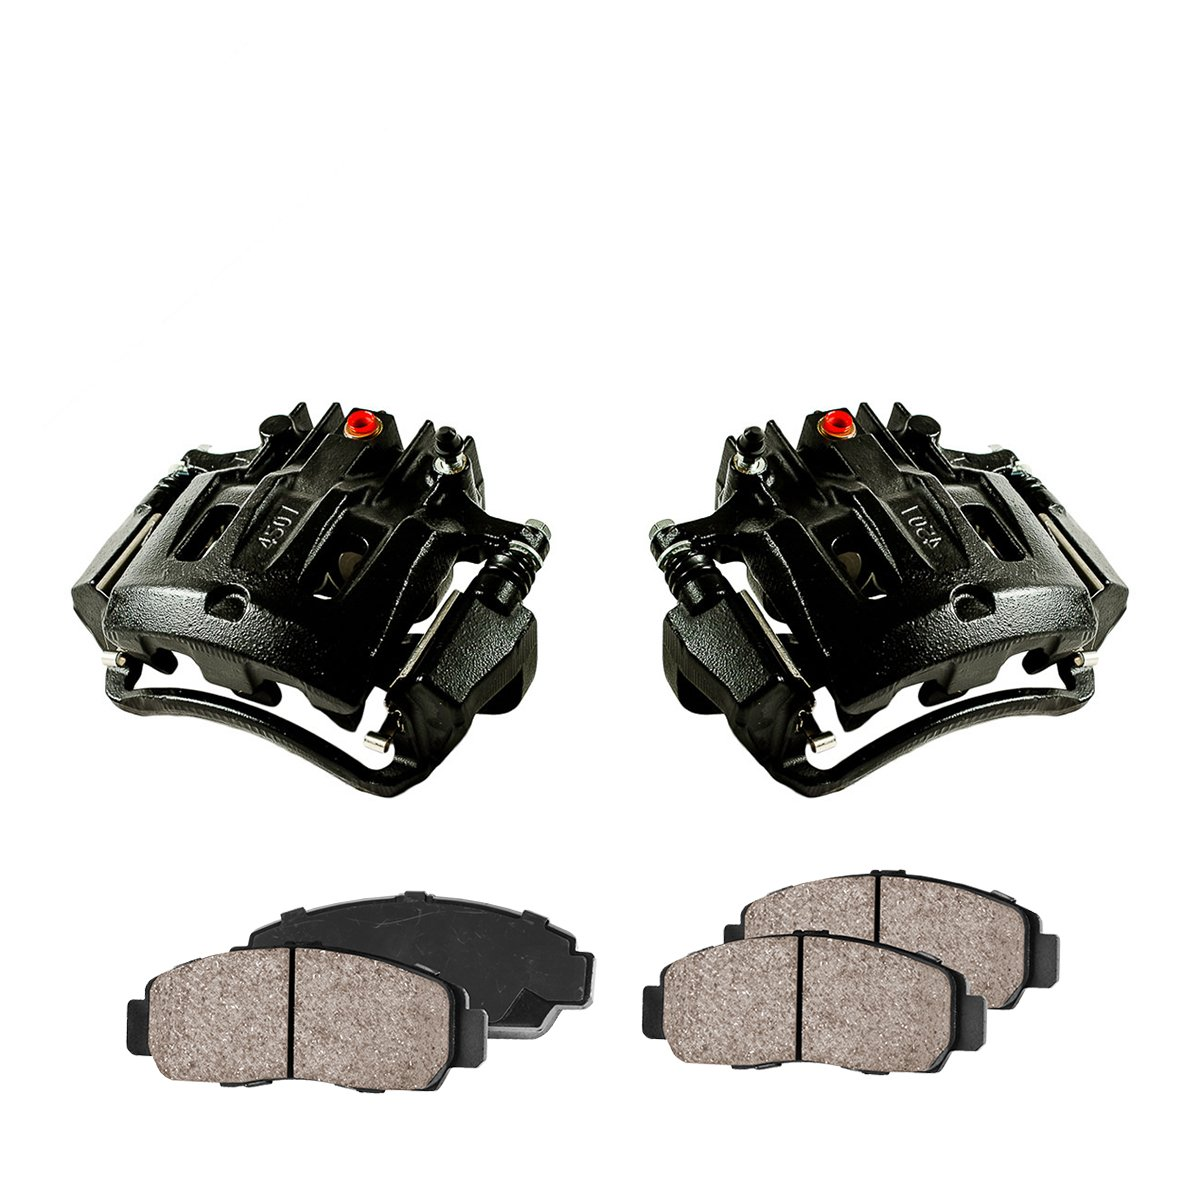 CCK02399 [2] REAR Performance Black Powder Coated Calipers + [4] Quiet Low Dust Ceramic Brake Pads Callahan Brake Parts